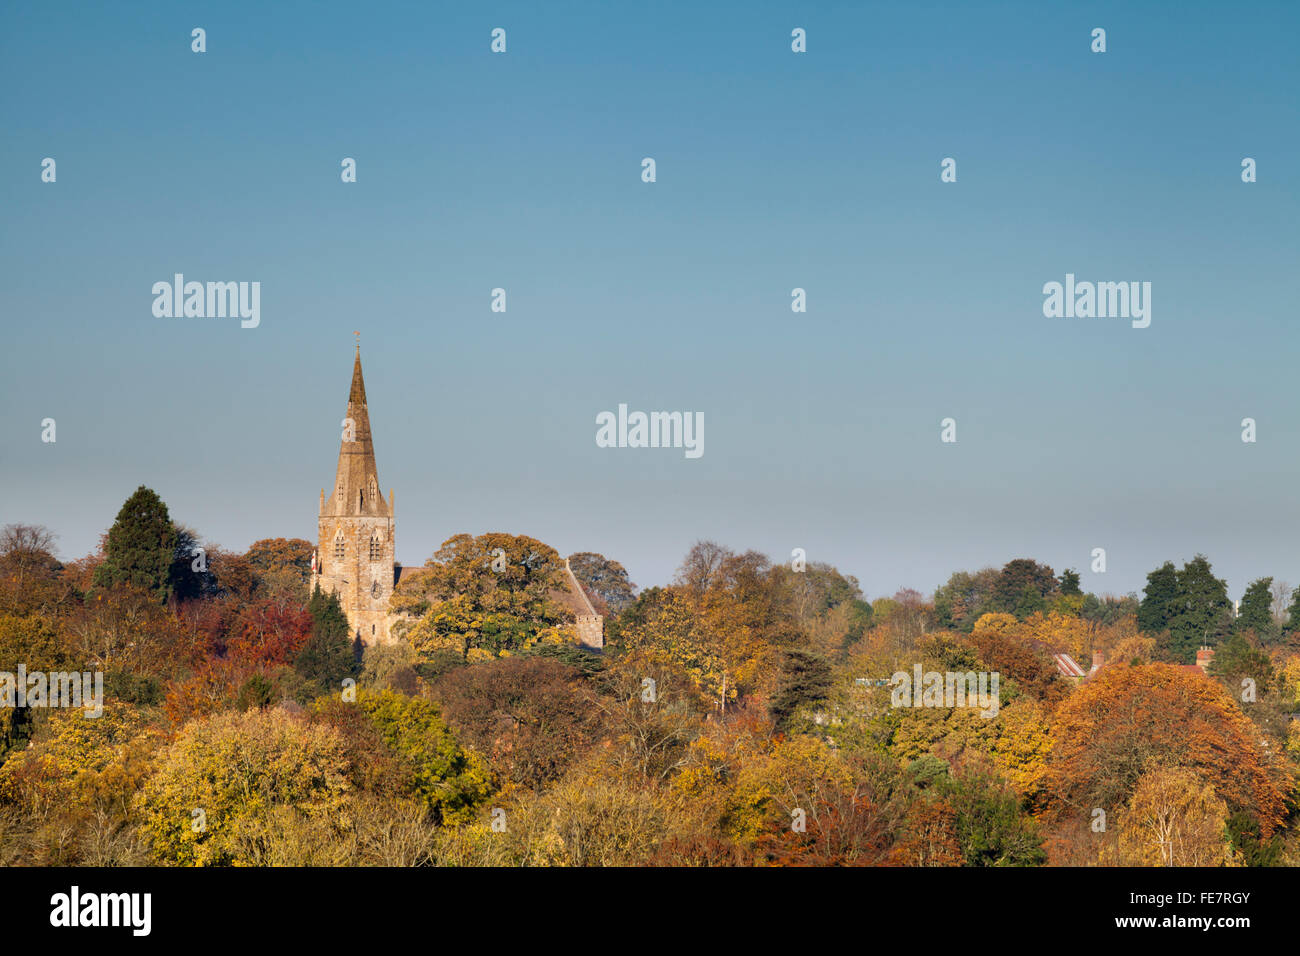 The Saxon church of All Saints rising above autumn trees in the village of Brixworth in Northamptonshire, England. - Stock Image